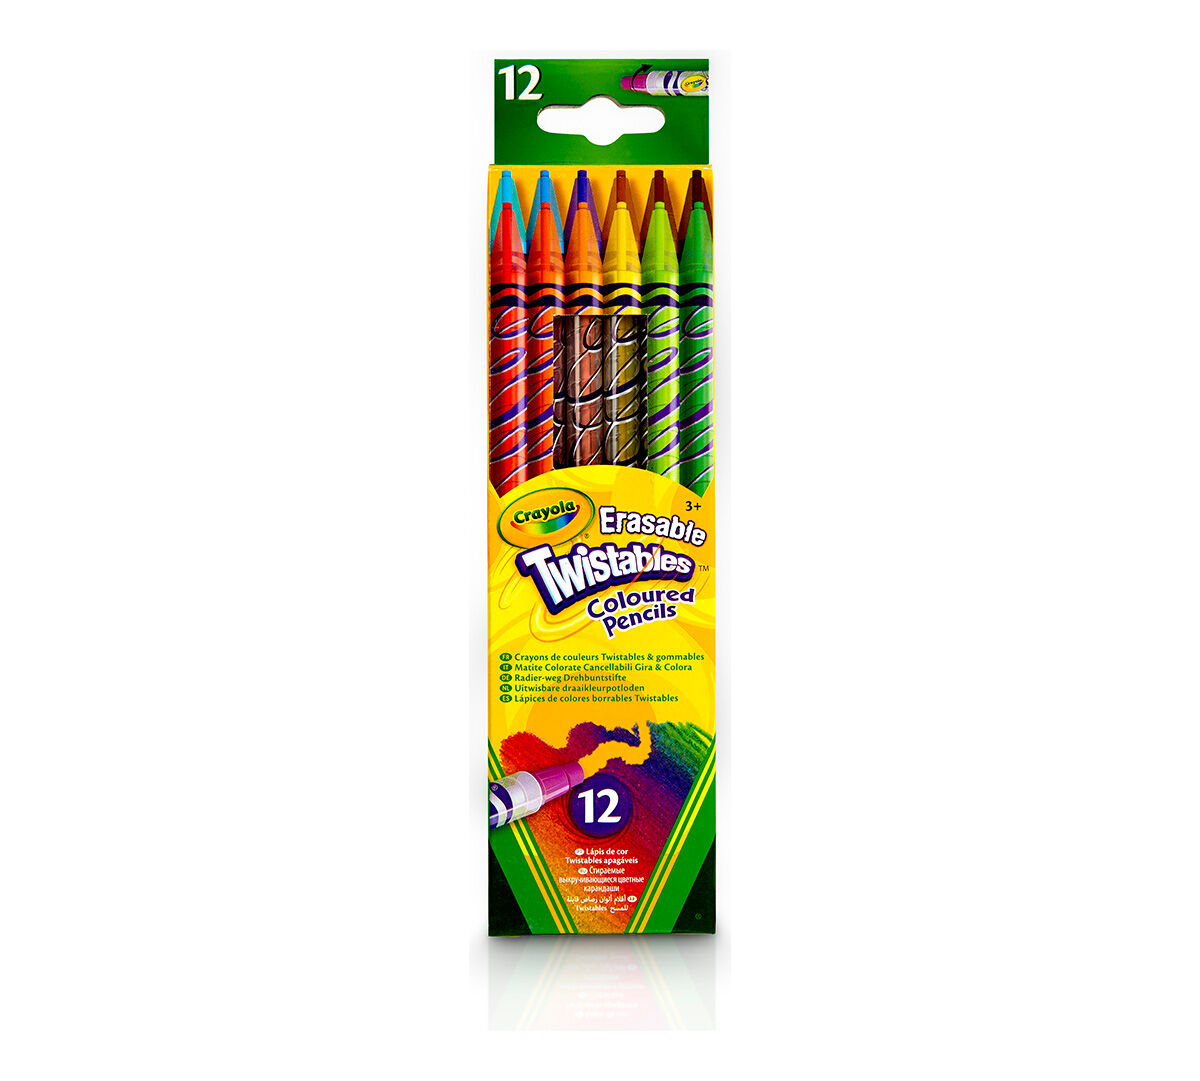 Crayola Erasable Twistables Colored Pencils, 12 Count 68 ...